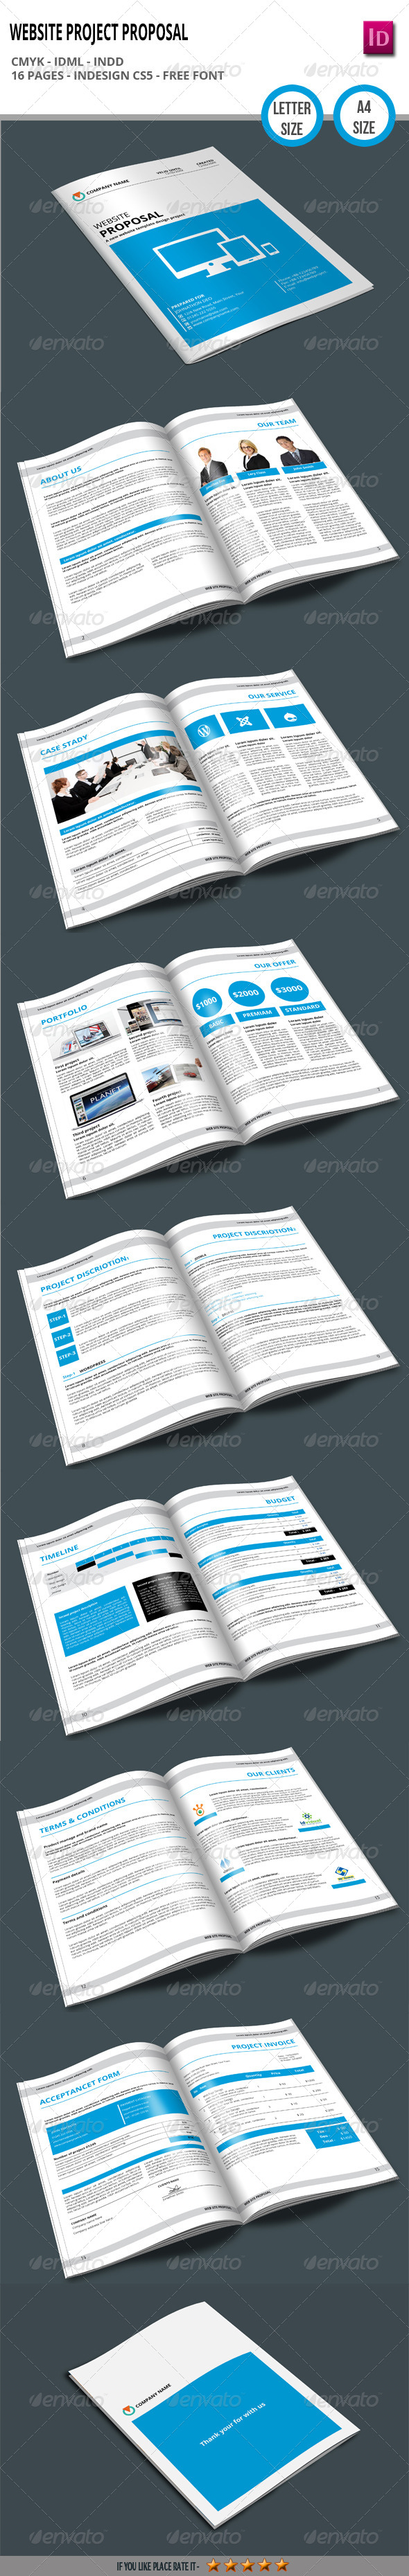 GraphicRiver Website Project Proposal 6659419